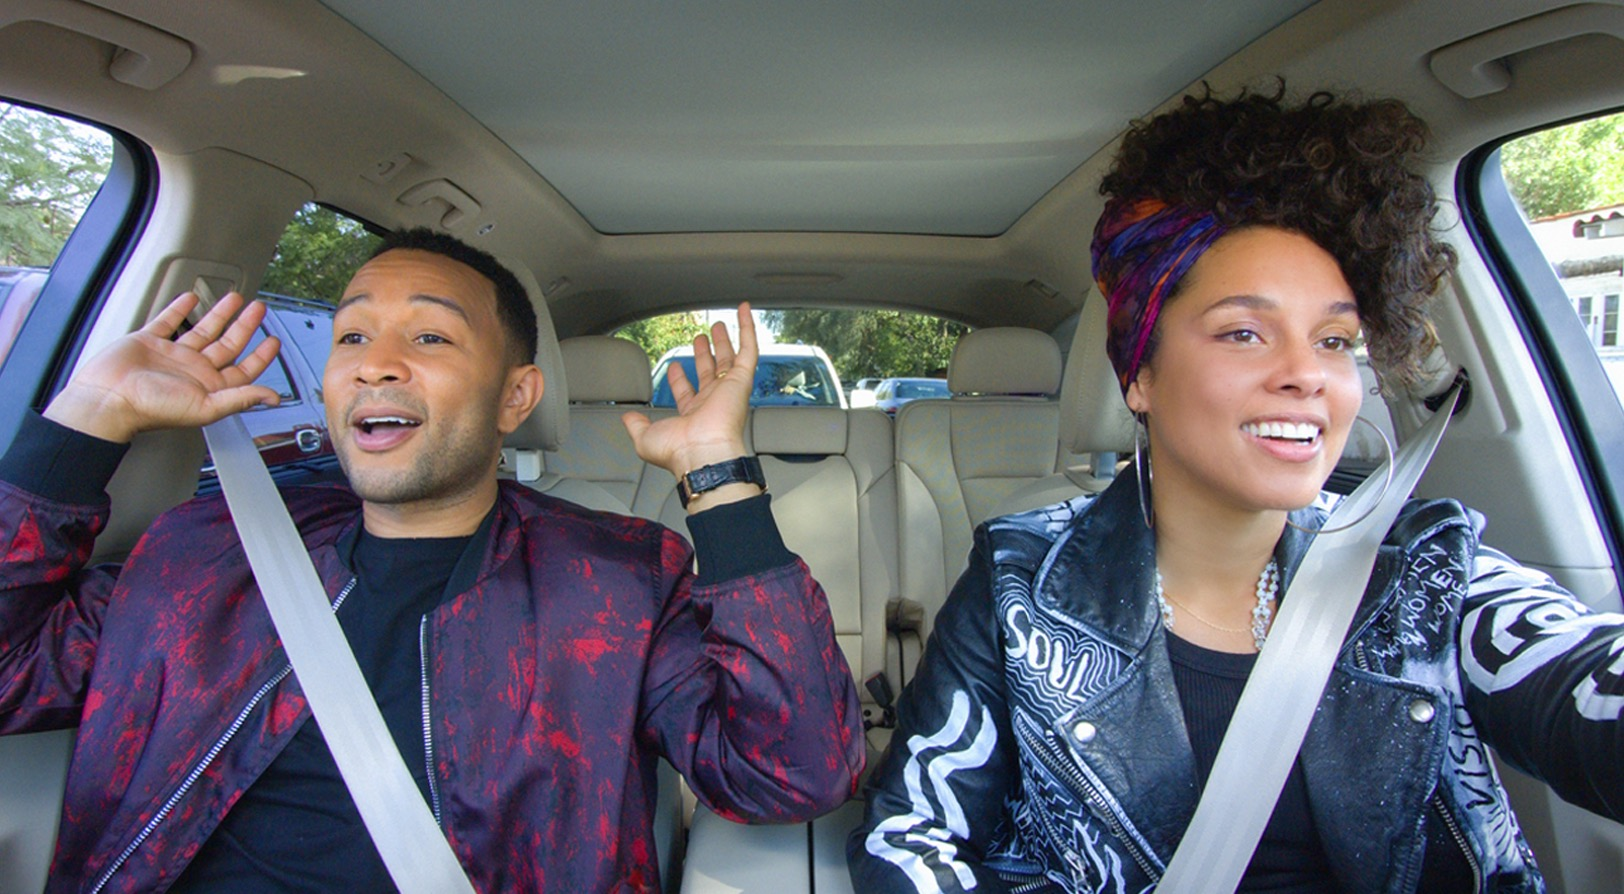 an analysis of the movie carpool The study underscores the power of analysis of ancient dna to solve vexing  opened up about her new movie  him as she makes hilarious carpool.